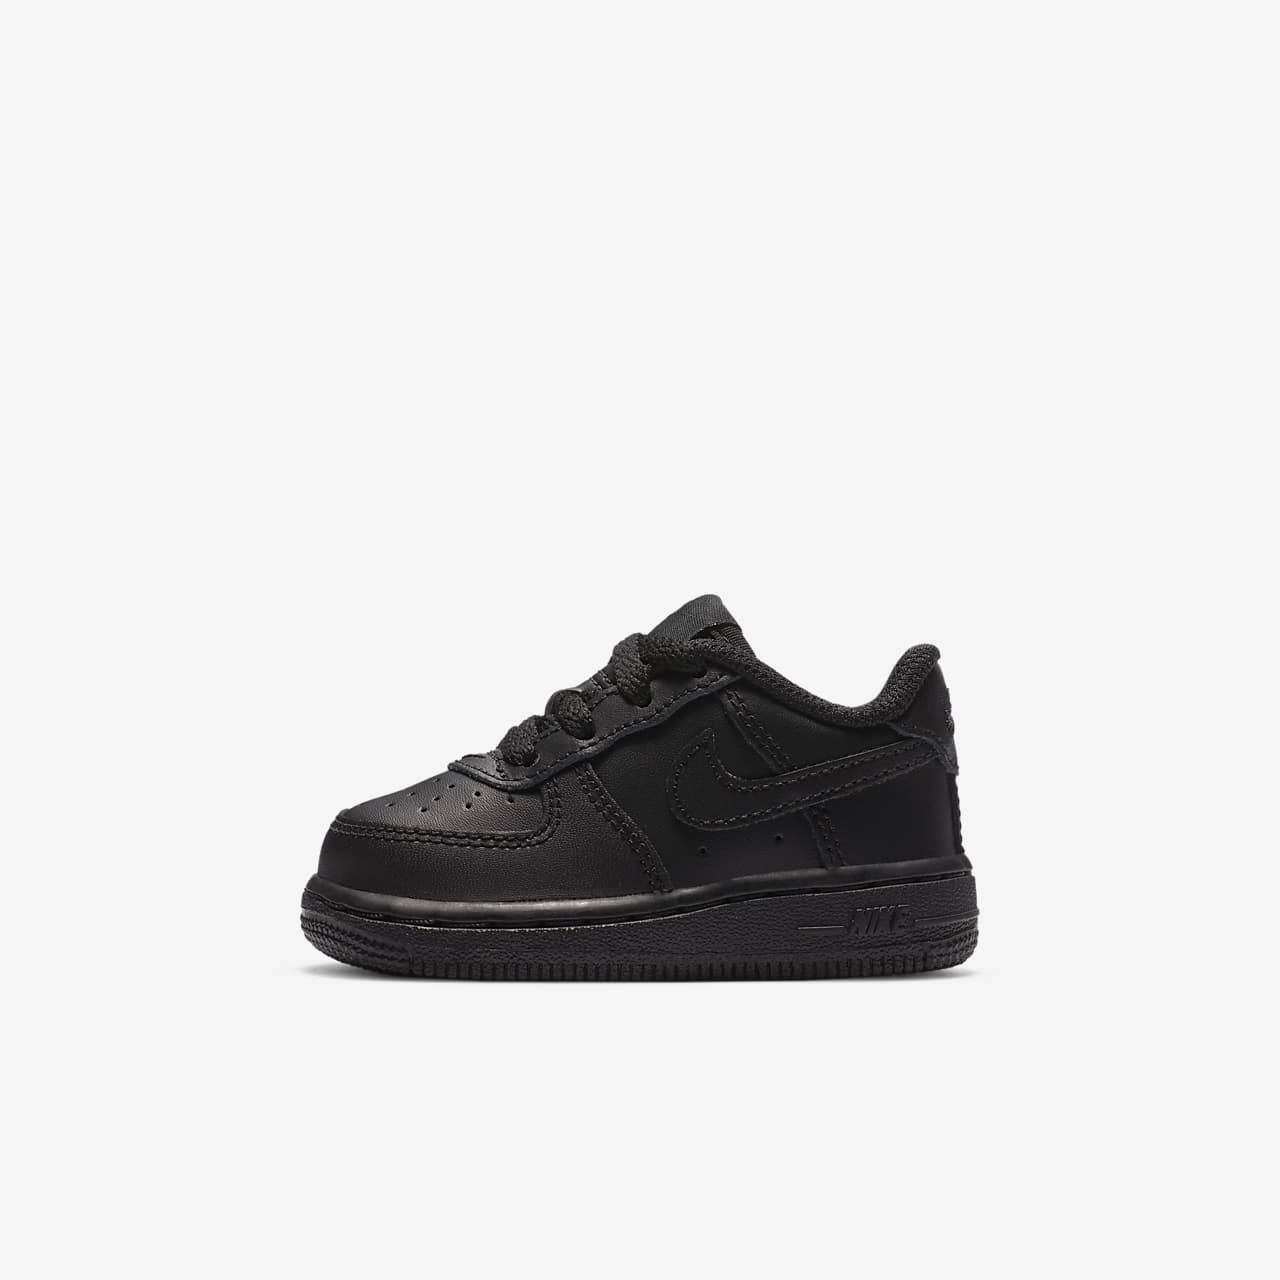 5aea2988457a Nike Air Force 1 06 Infant Toddler Shoe. Nike.com